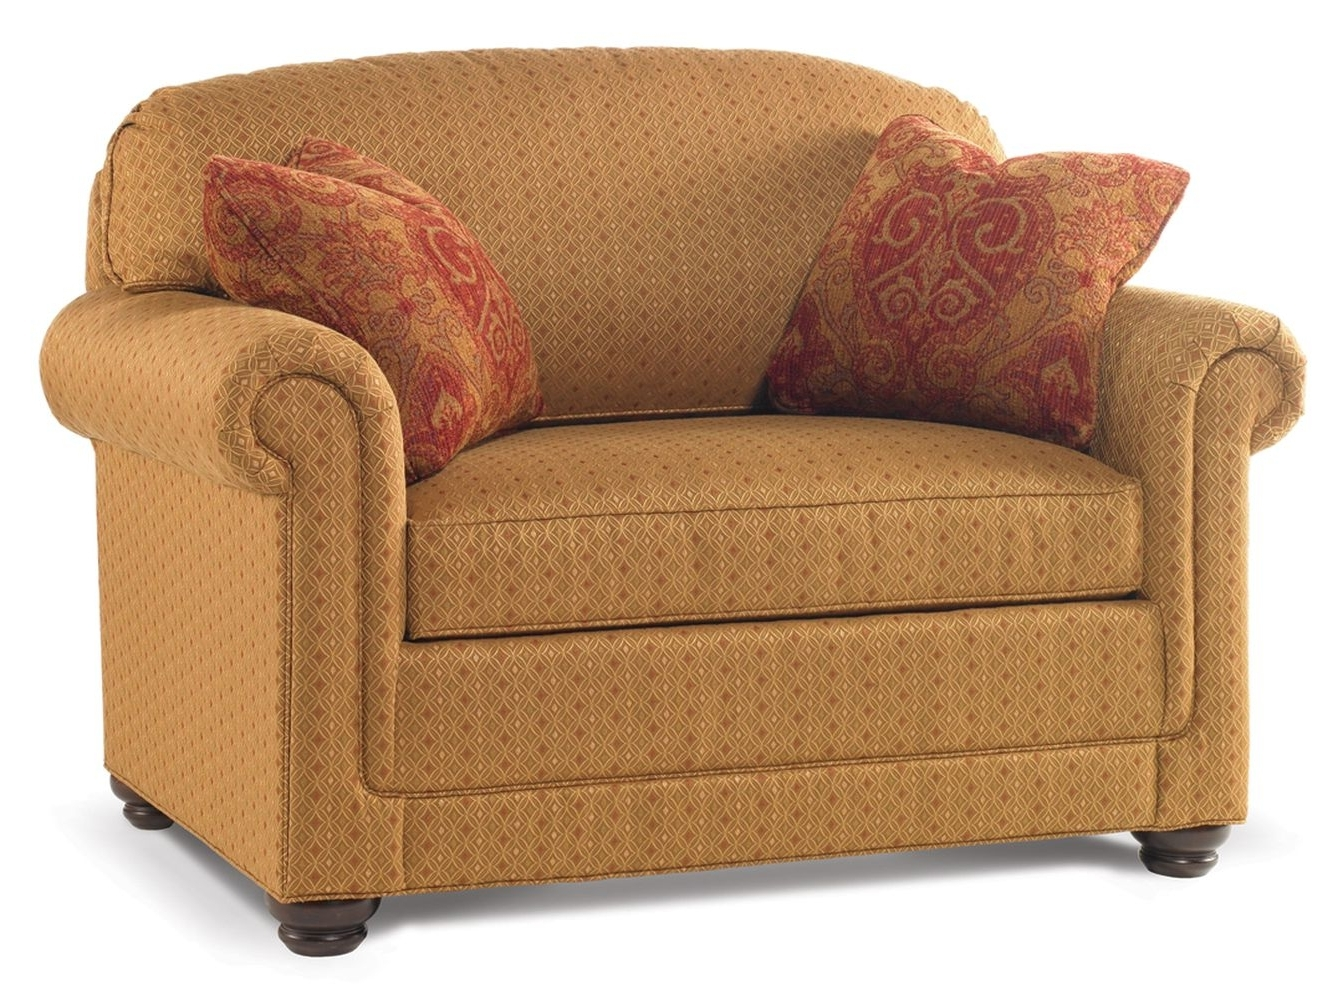 Small Twin Sleeper Sofas Chairs With Pillow And Storage Plus Brown Throughout Latest Twin Sleeper Sofa Chairs (View 6 of 15)